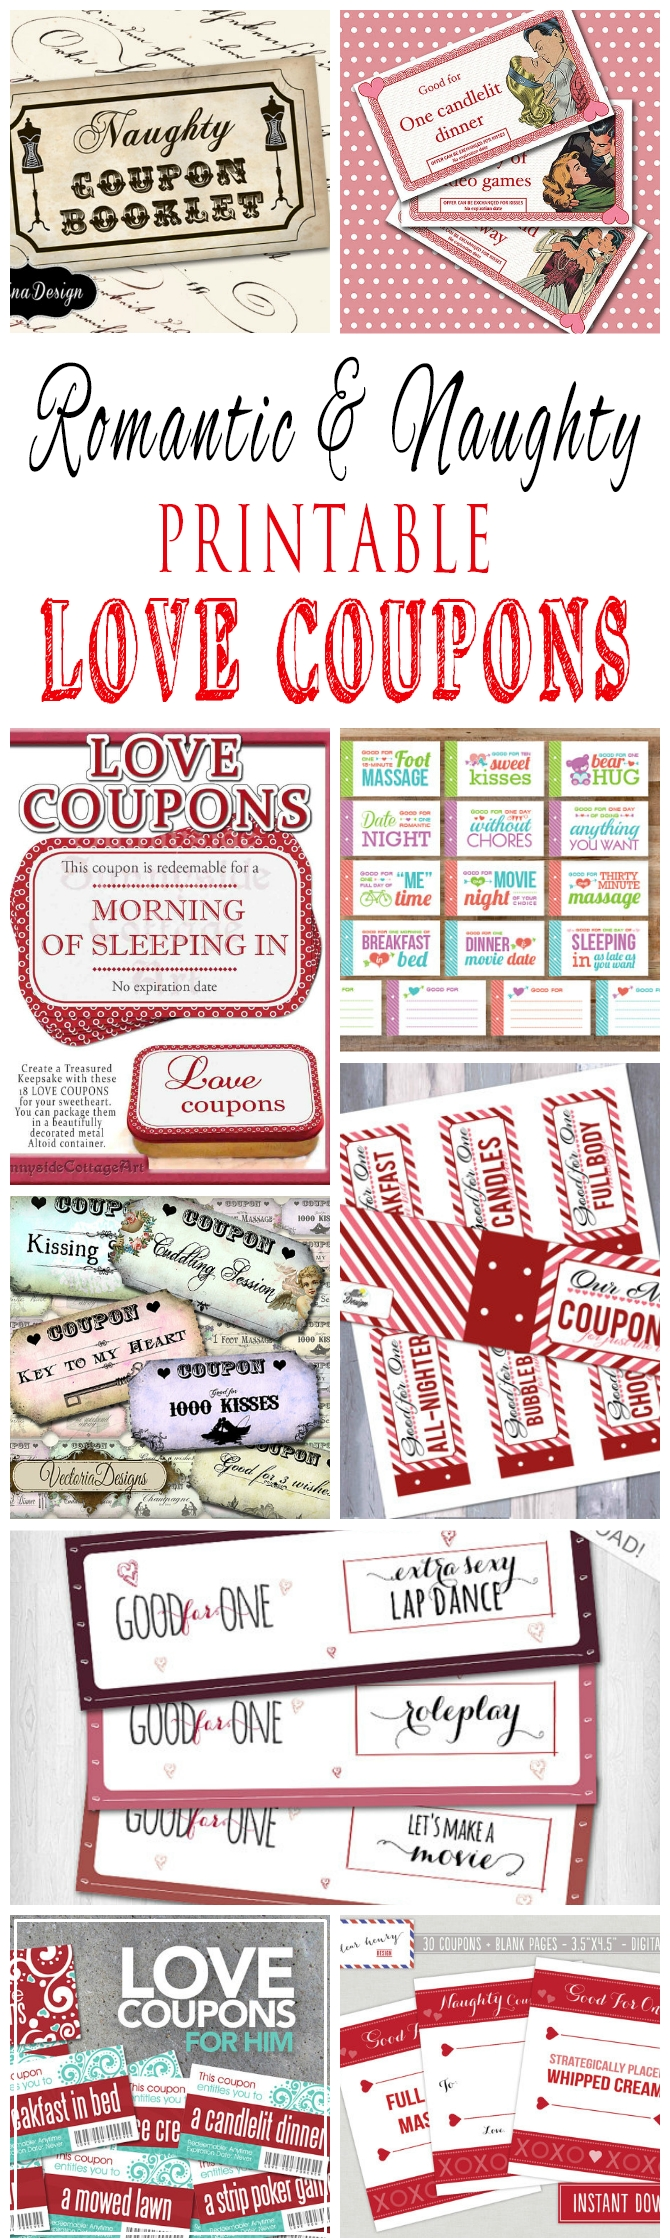 10 Wonderful Love Coupon Ideas For Boyfriend romantic and naughty printable love coupons for him glitter n spice 5 2020